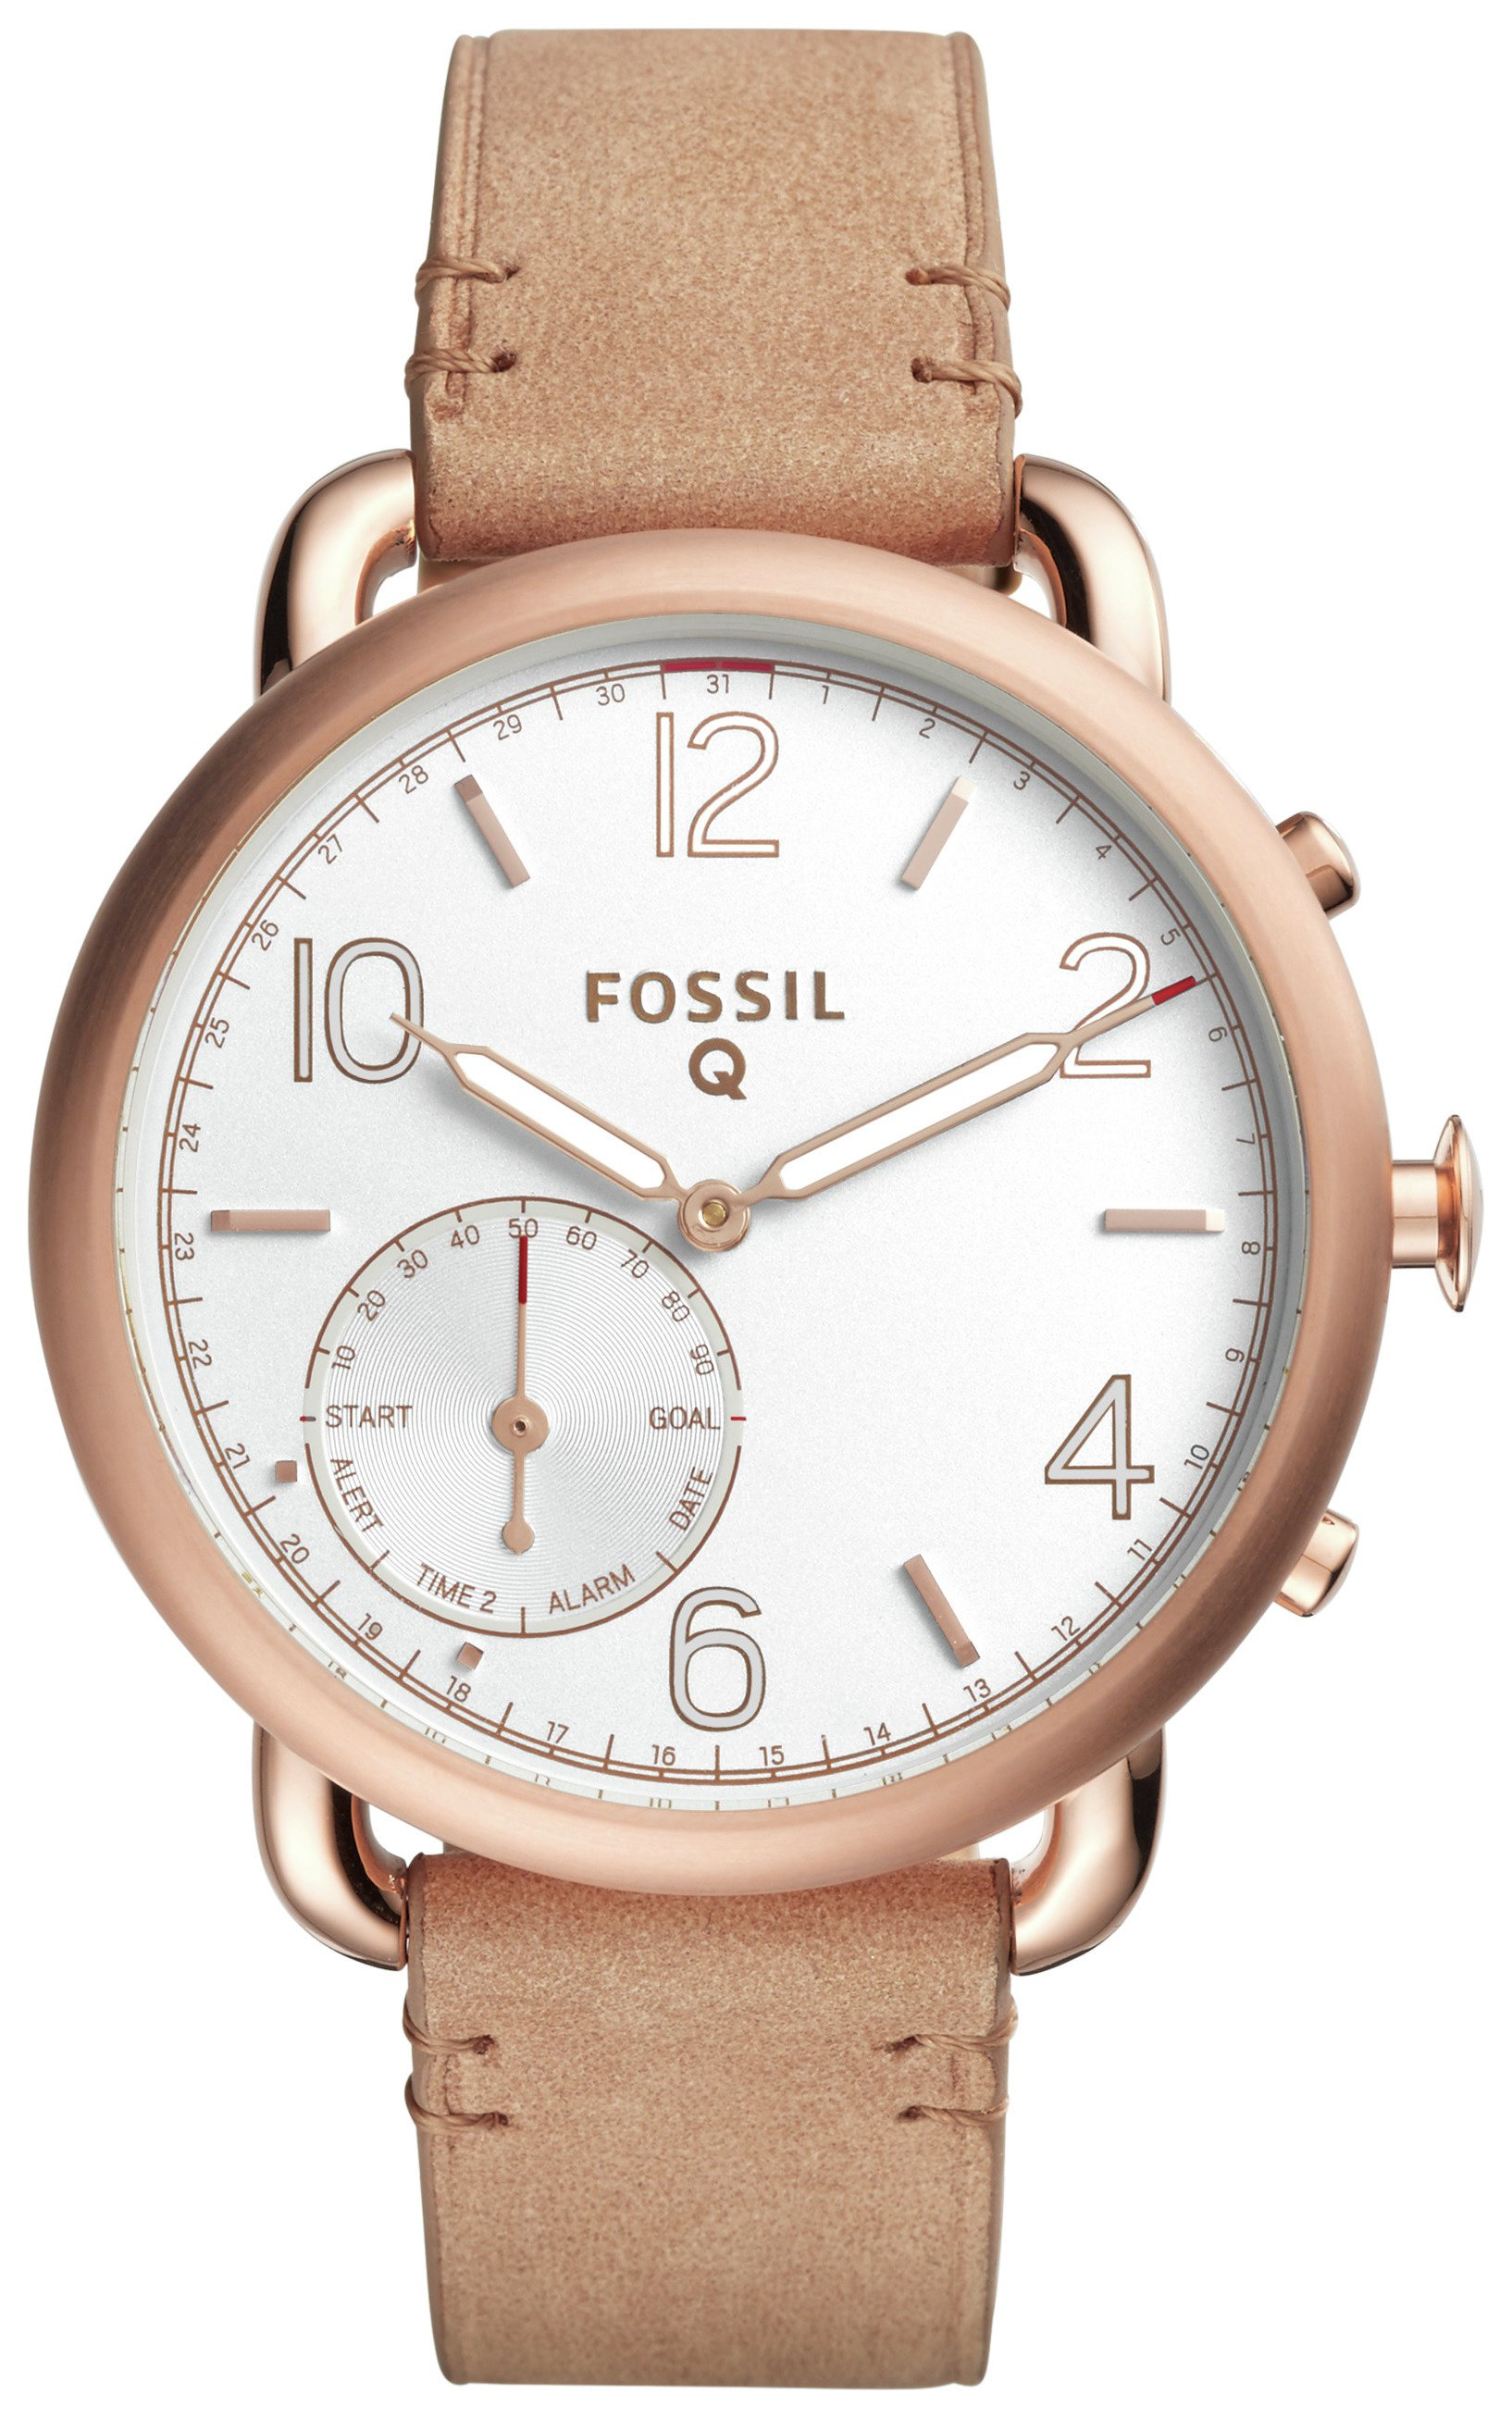 Image of Fossil Q Tailor Gazer Sand Leather Strap Hybrid Smart Watch